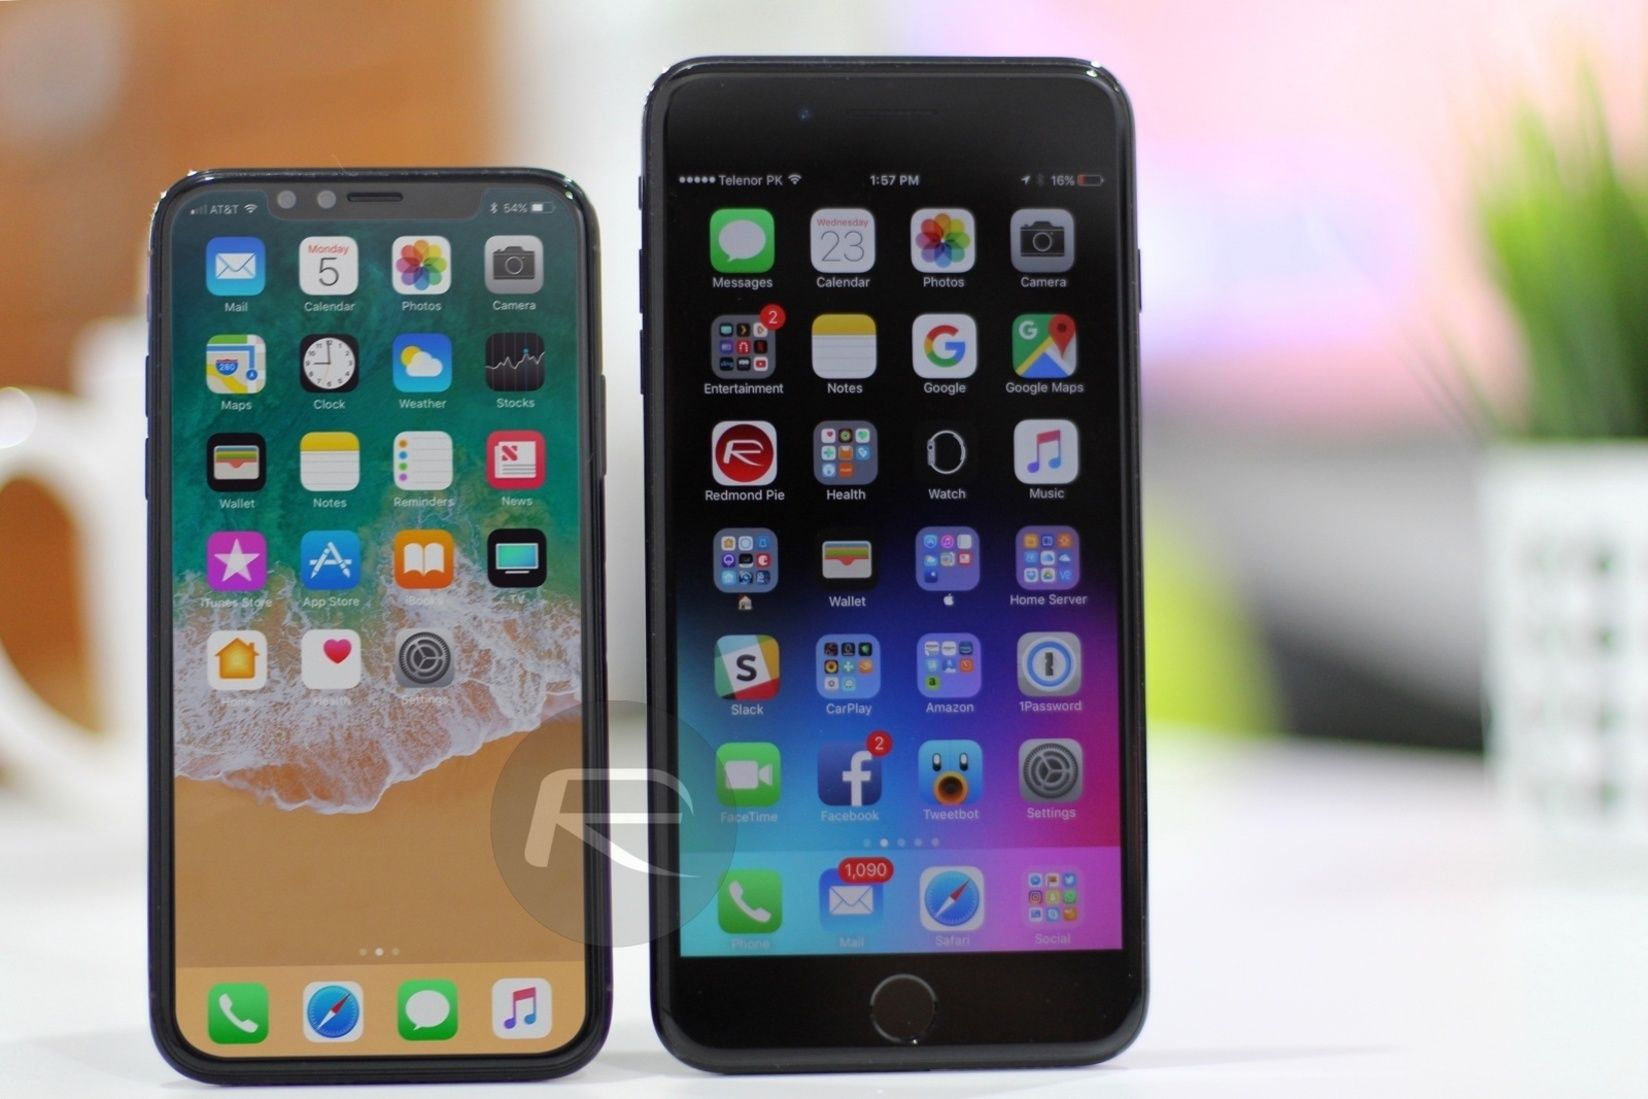 Here We Have The Iphonex Iphone8 Next To The Iphone7plus Same Screen Size But In A Much Smaller Body So Nice Find Out Iphone Iphone 8 White Iphone